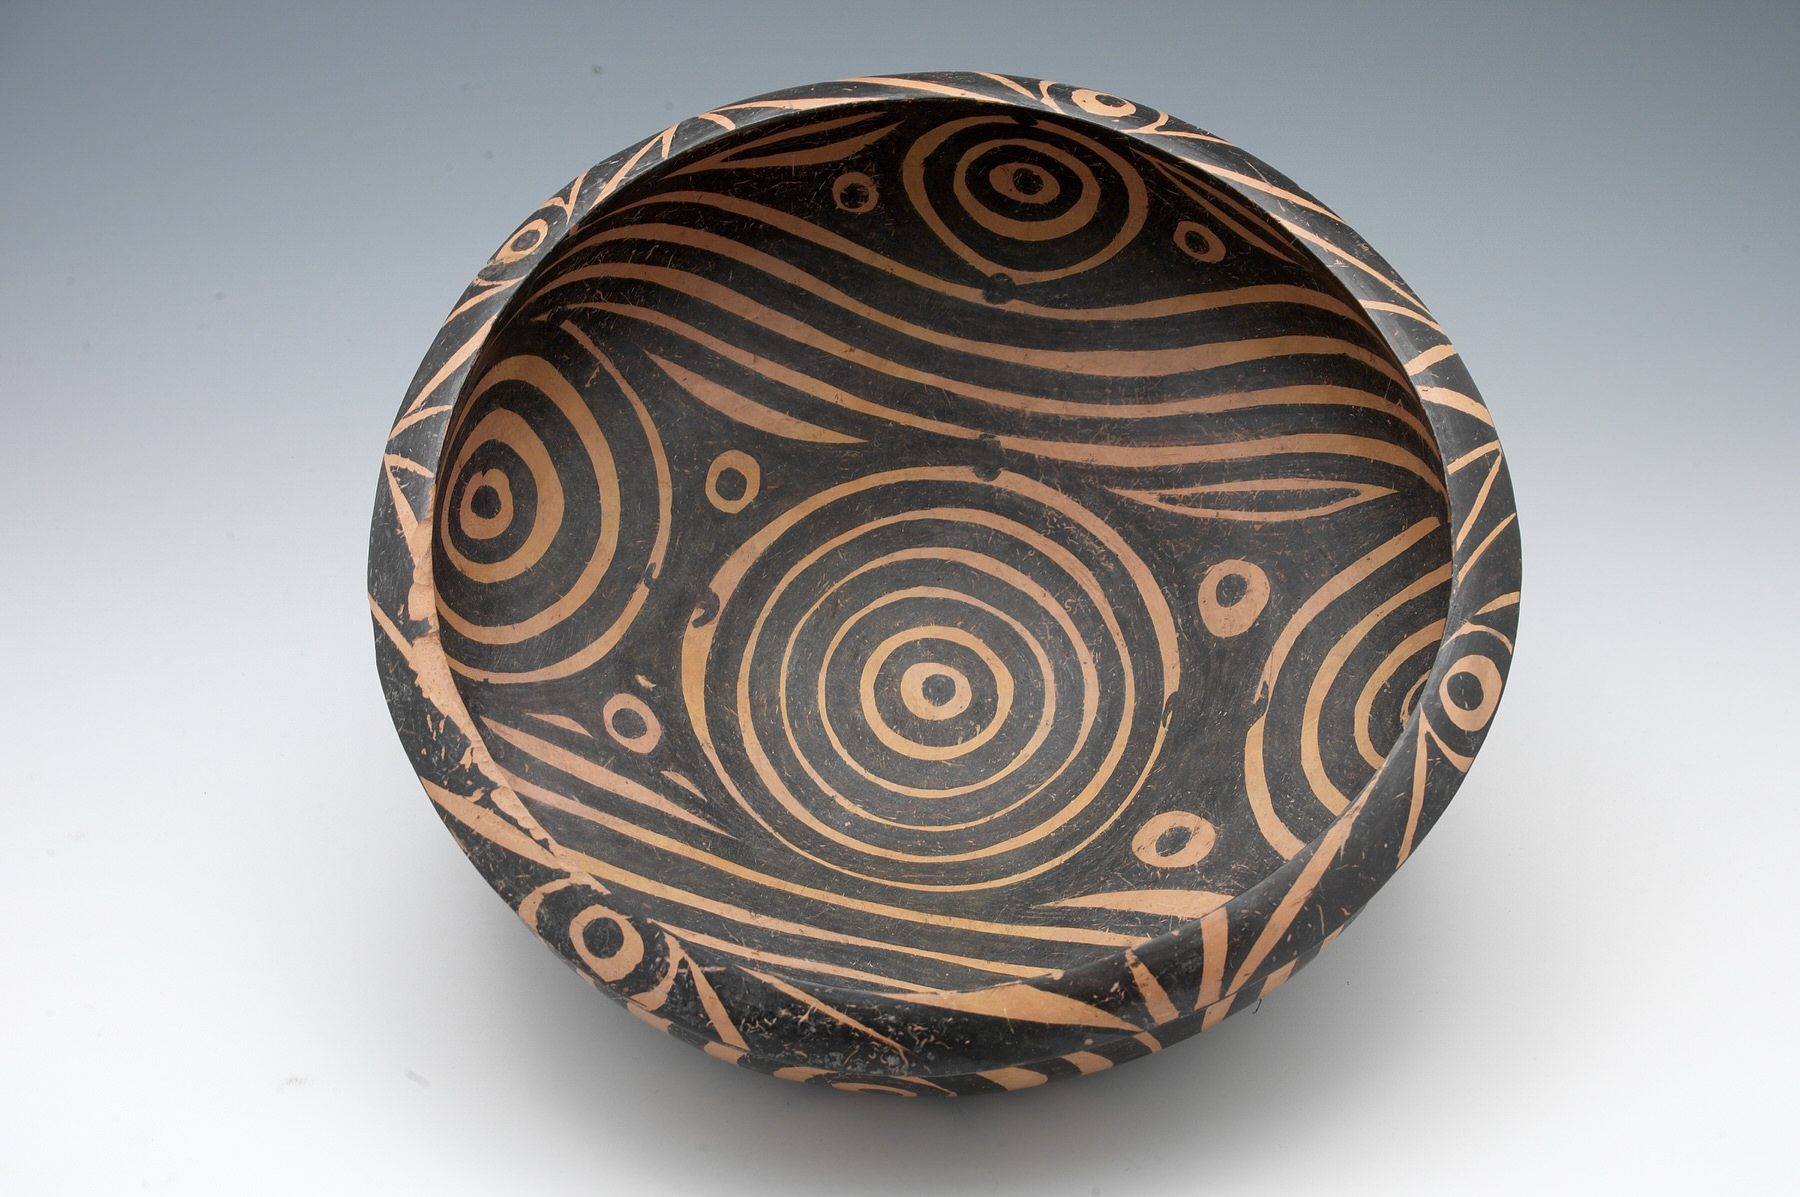 Harvard exhibition of neolithic chinese pottery harvard magazine basin with painted geometric decor and burnished surface chinese neolithic period majiayao culture majiayao phase 33002650 bce earthenware reviewsmspy